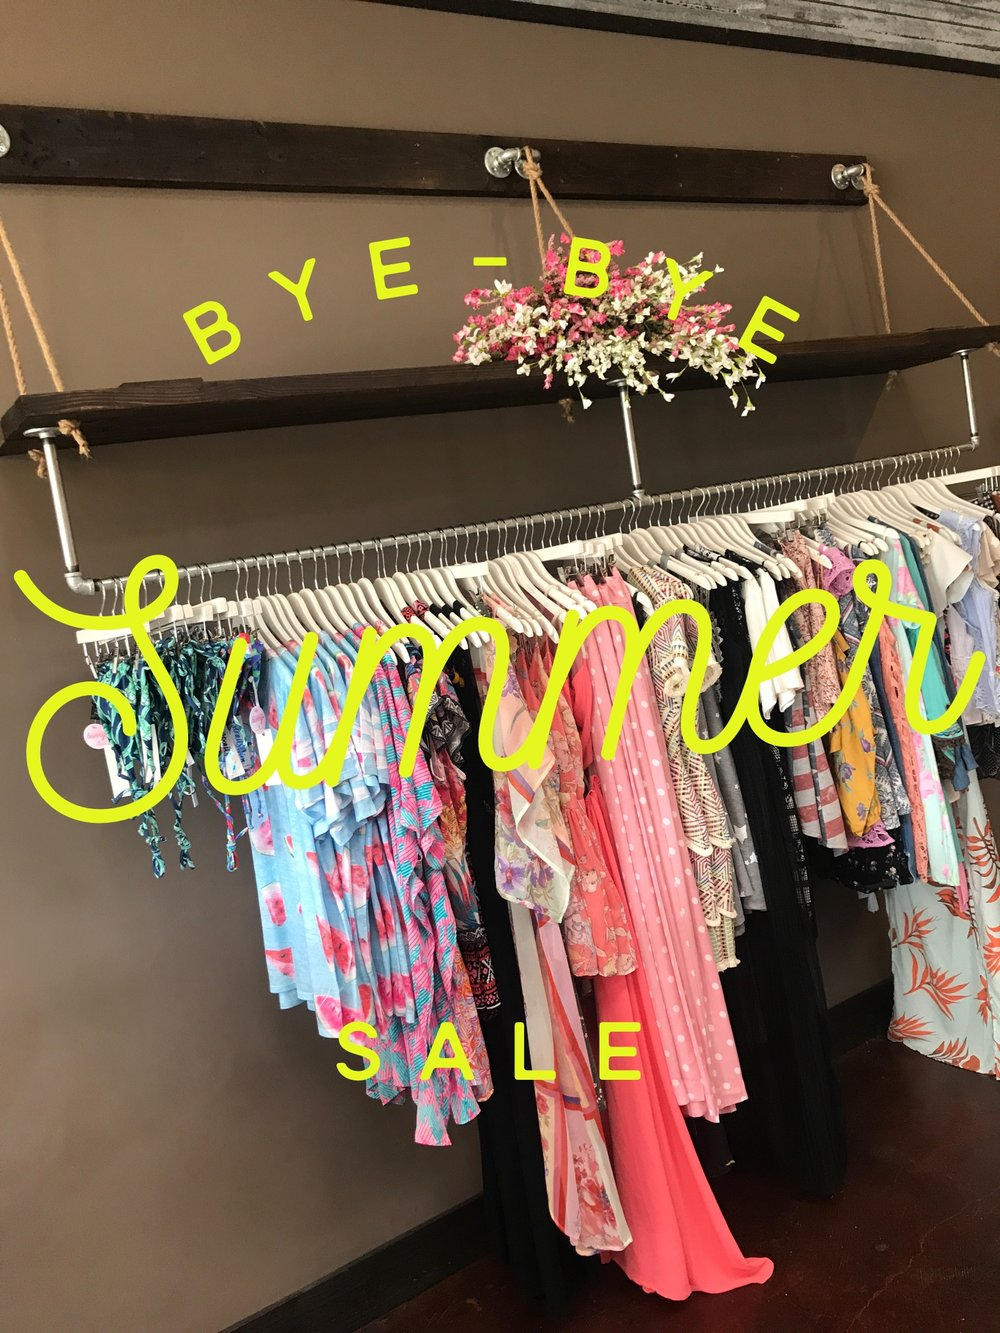 happening now.... 50% OFF Our Summer Racks. Check out the sale... and check out our totally amaze new arrivals!